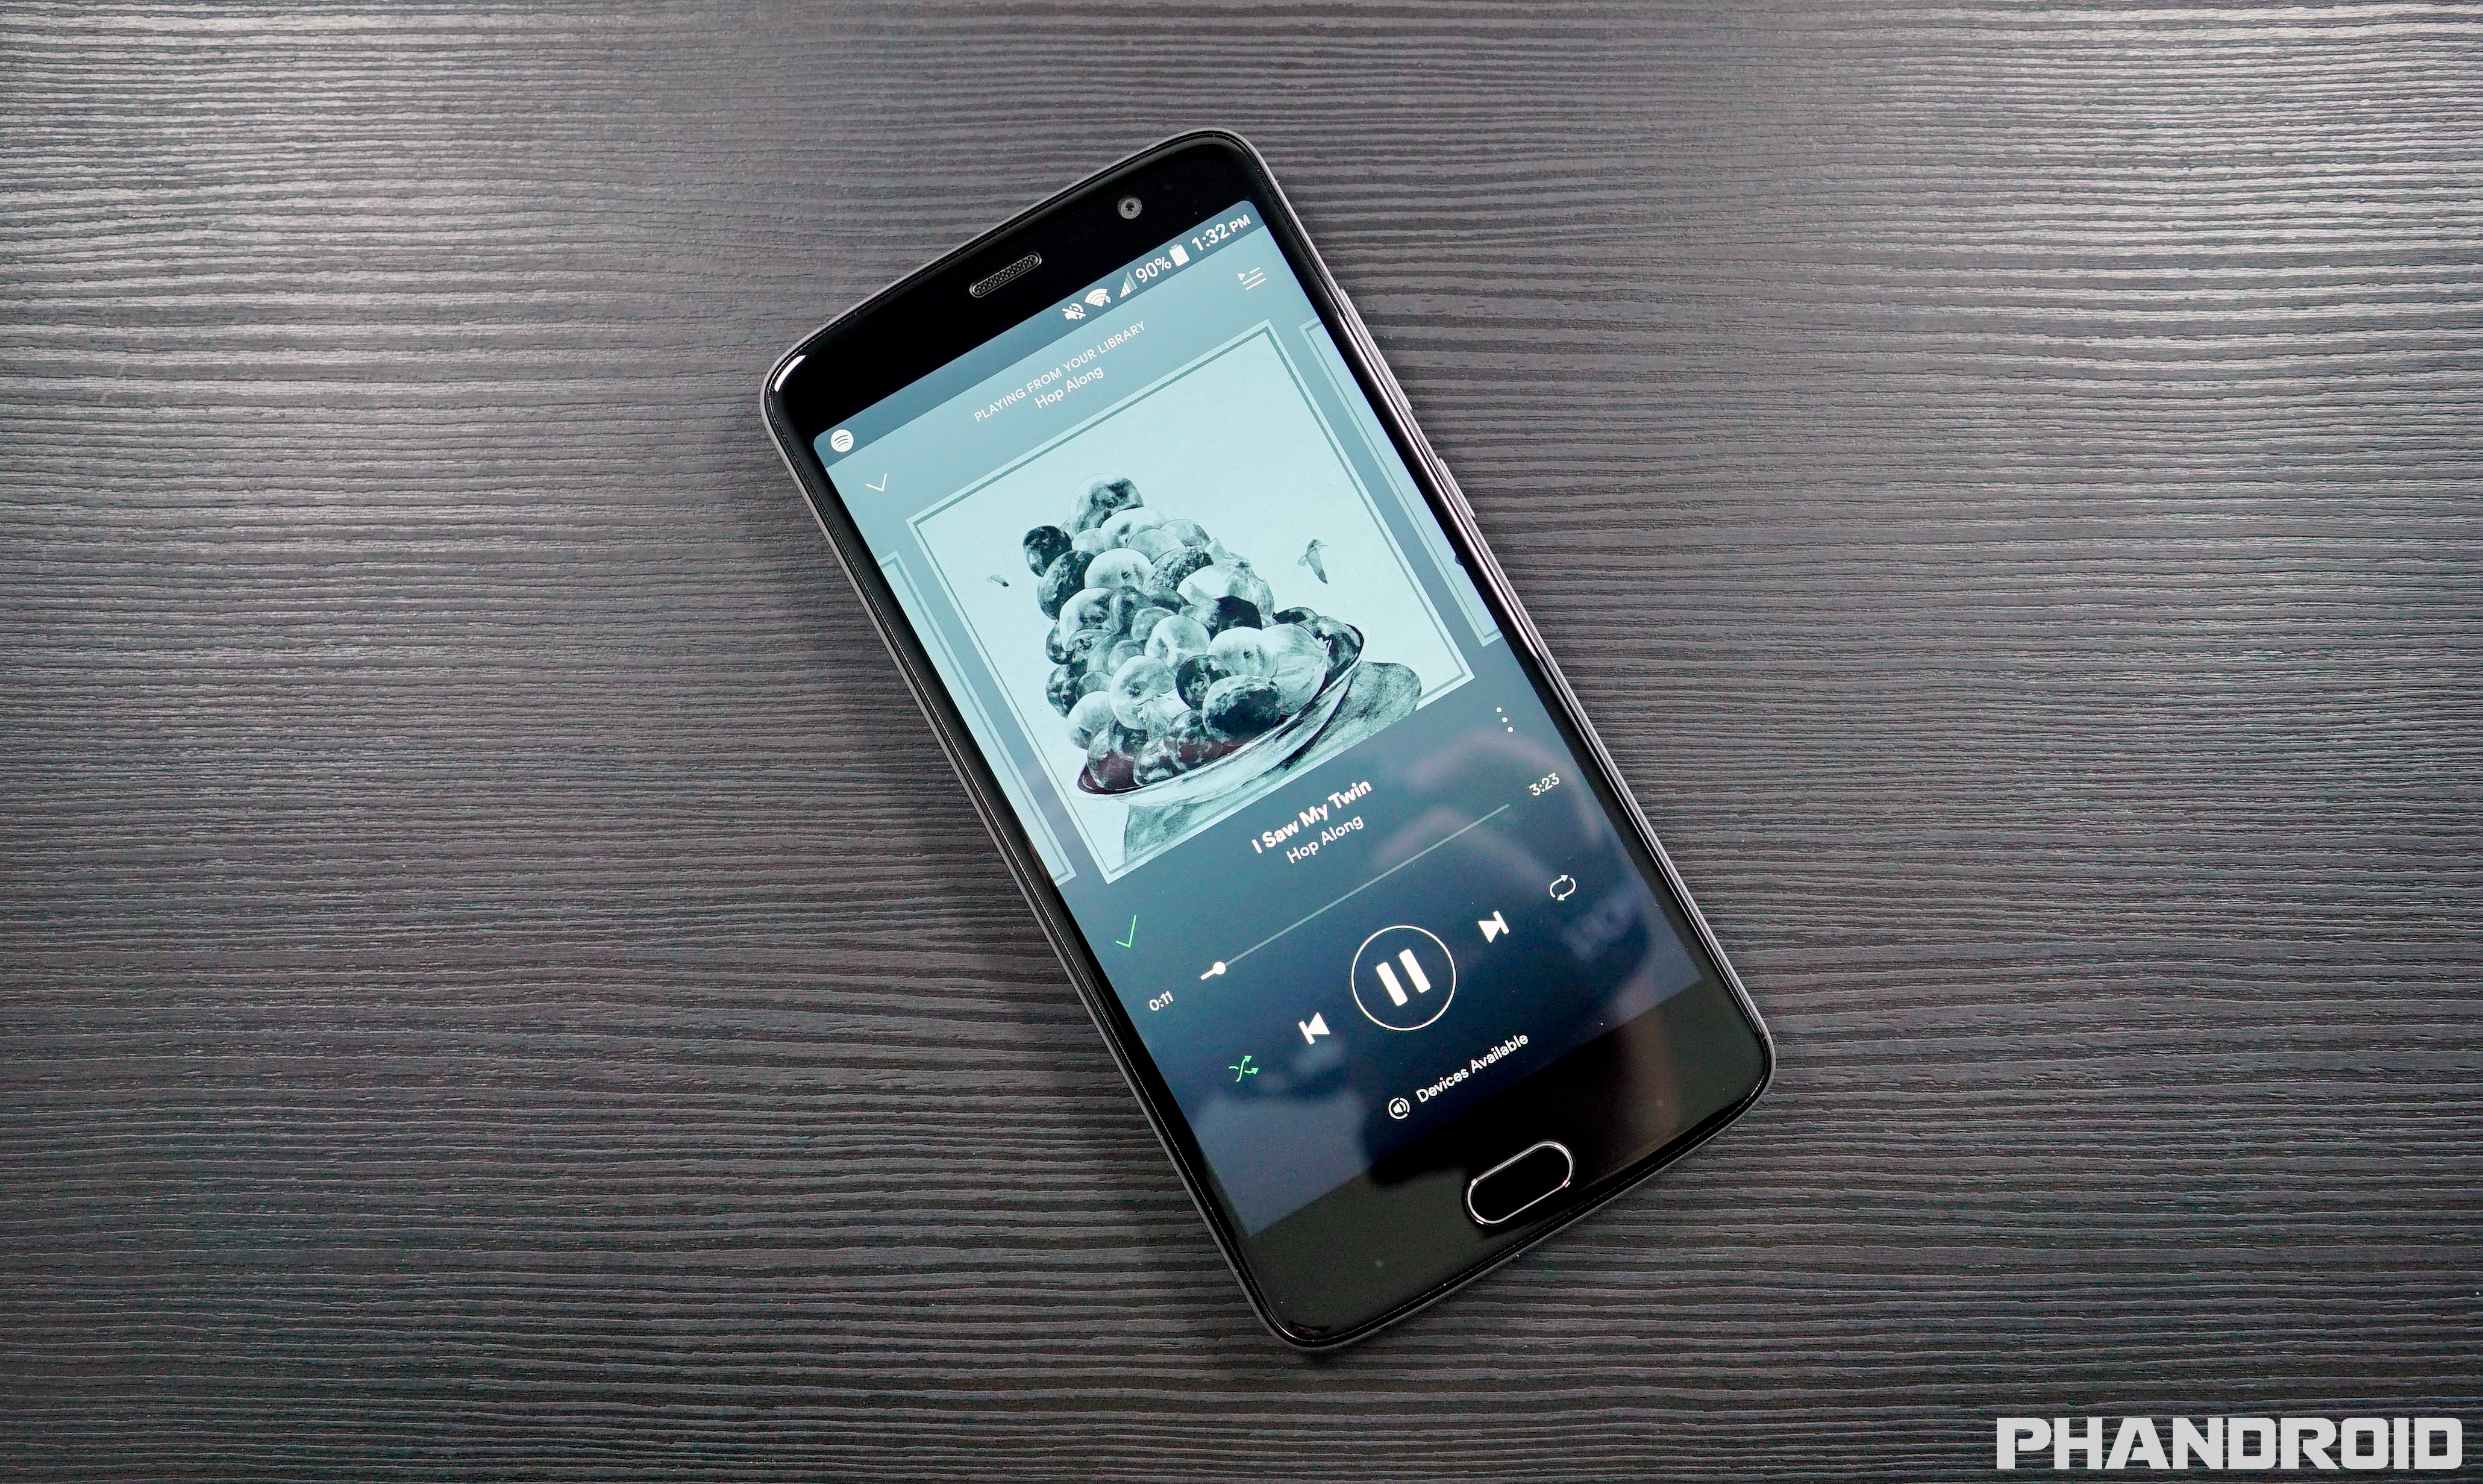 ZTE Blade V8 Pro has issues playing Spotify and other music apps